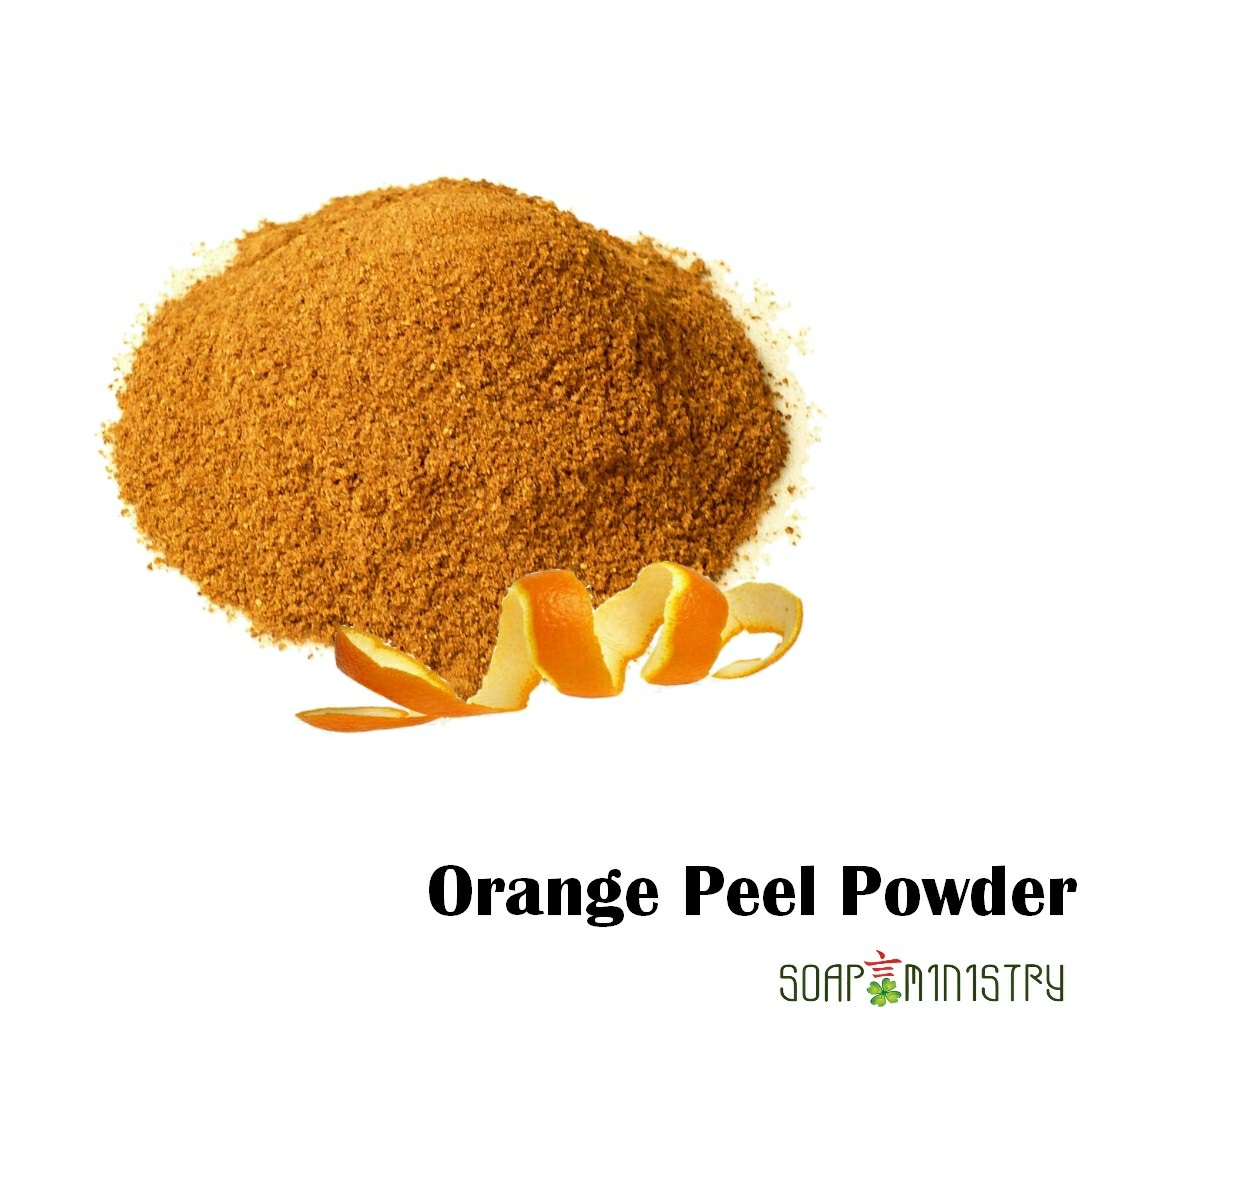 Orange Peel Powder 500g